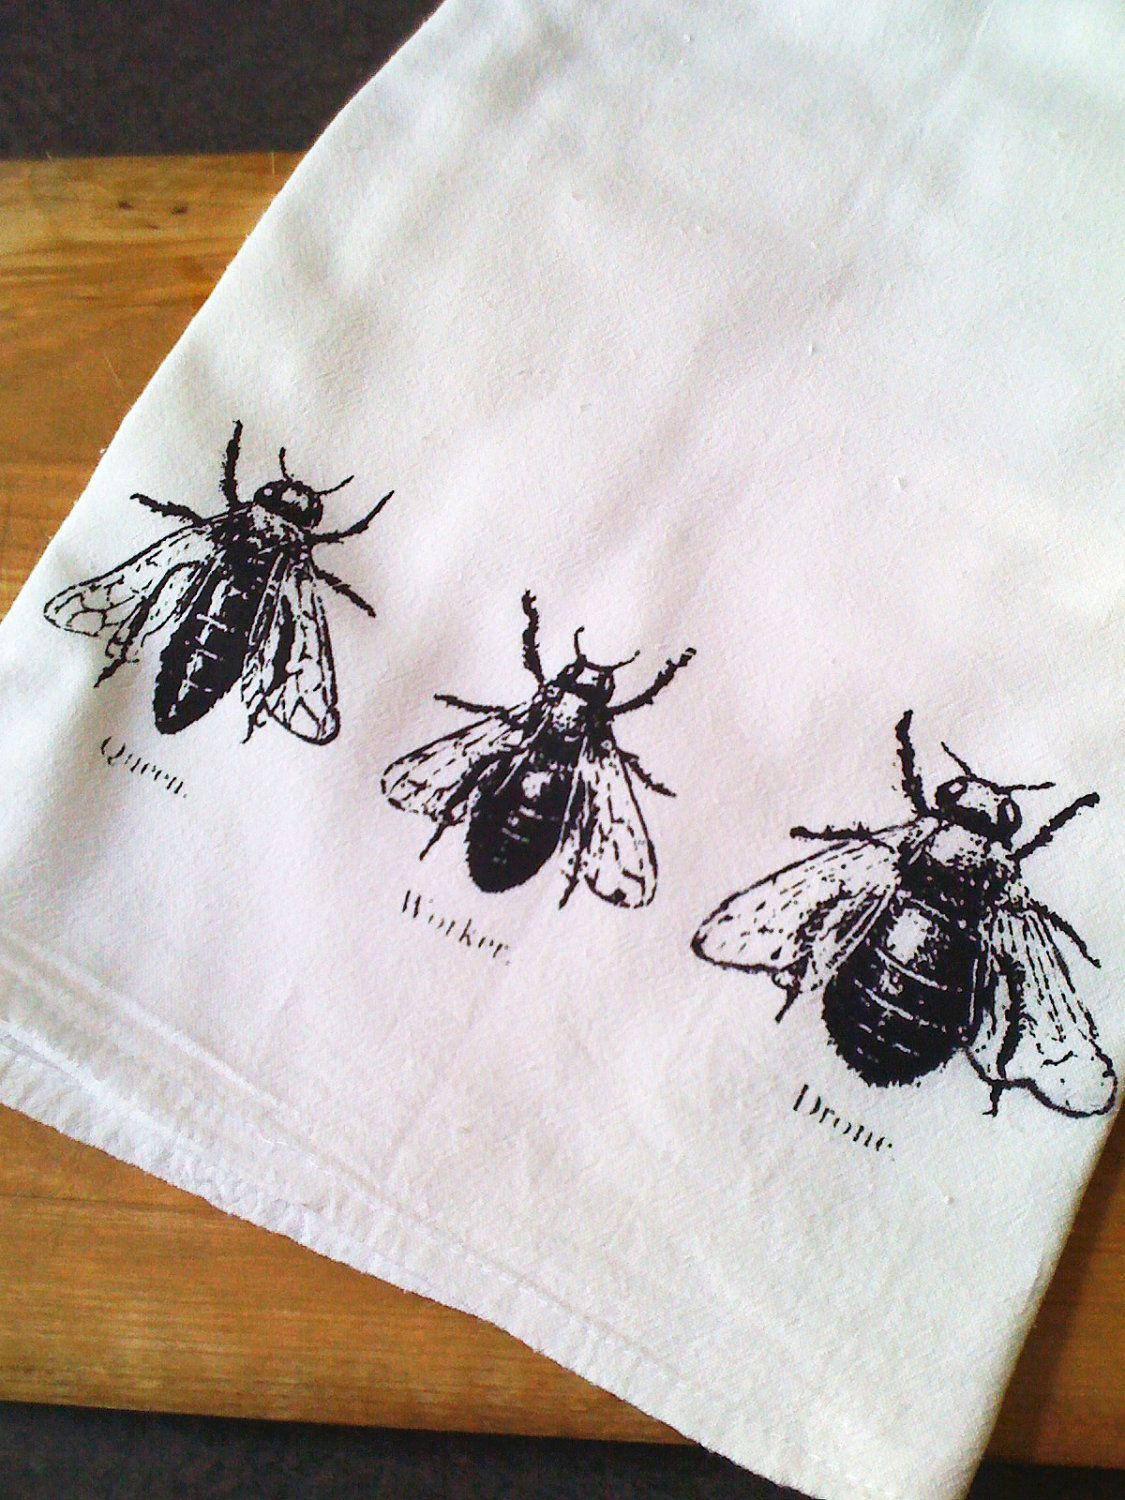 Now I love this: Bee Trio Screen Printed Kitchen Flour Sack Tea Towel. I want bees, but I want it tasteful and classy... not cheesy.